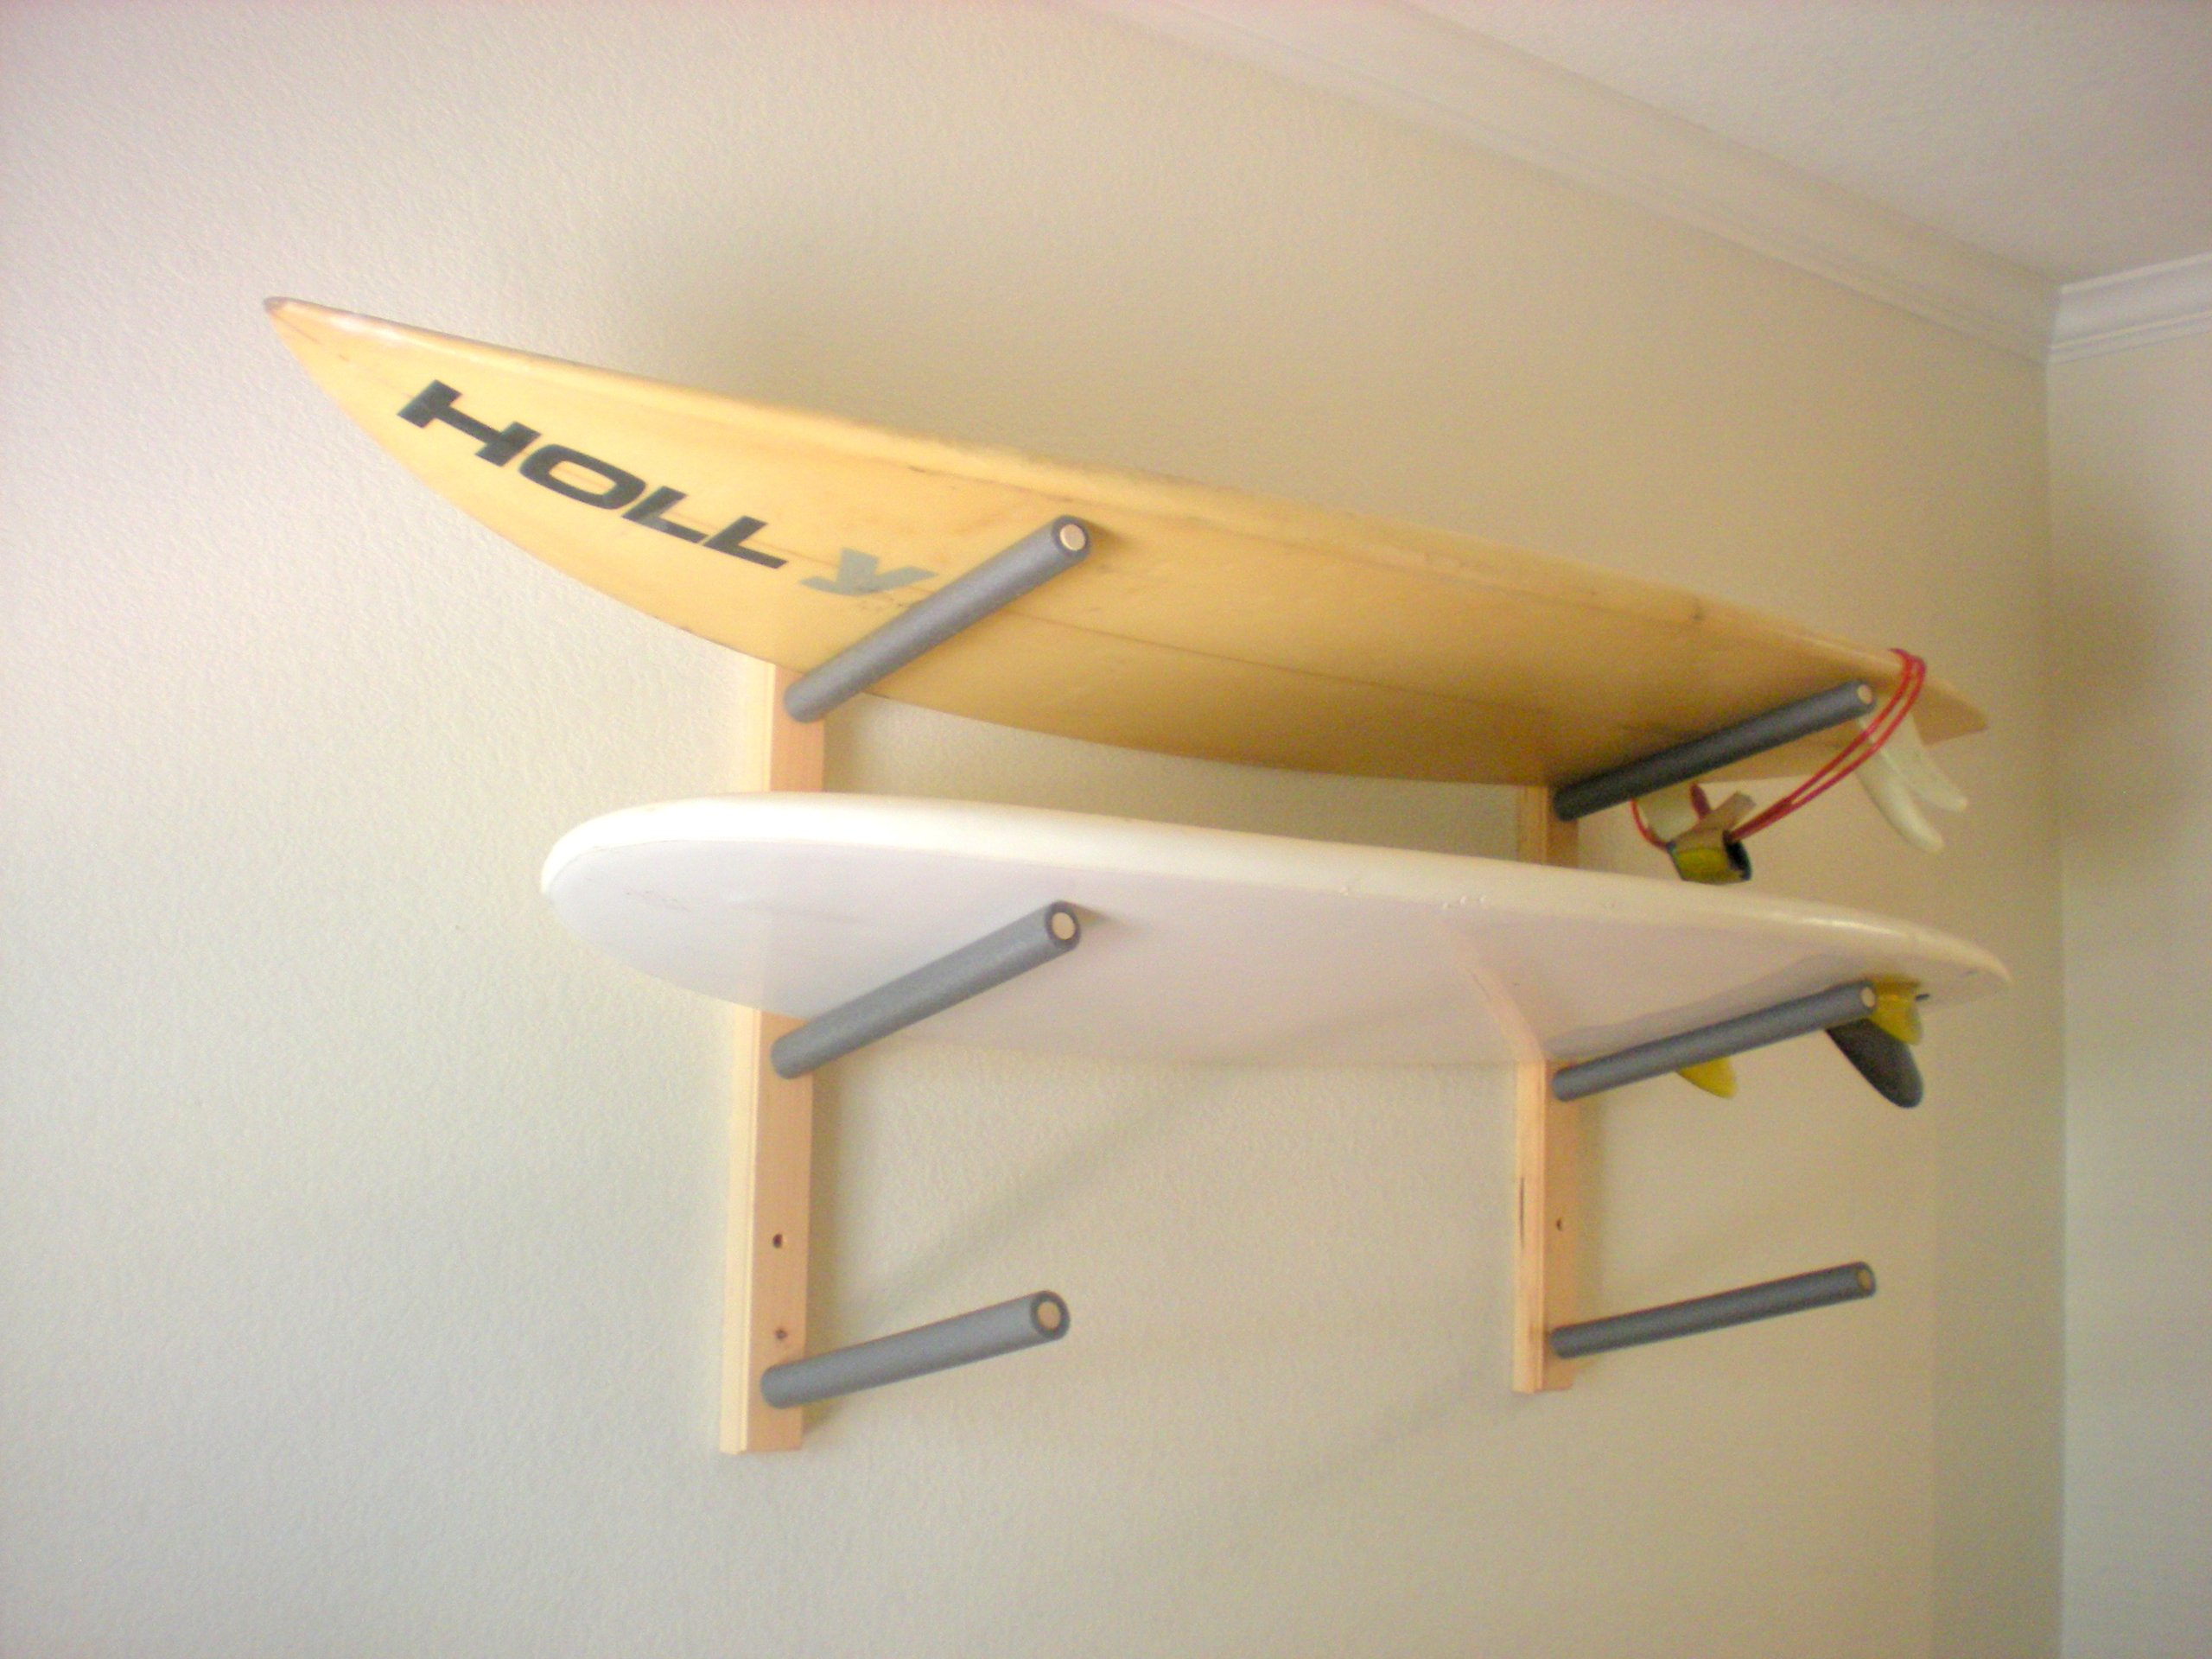 Surfboard, Wakeboard, Kiteboard Wall Rack Mount - Holds 3 Boards